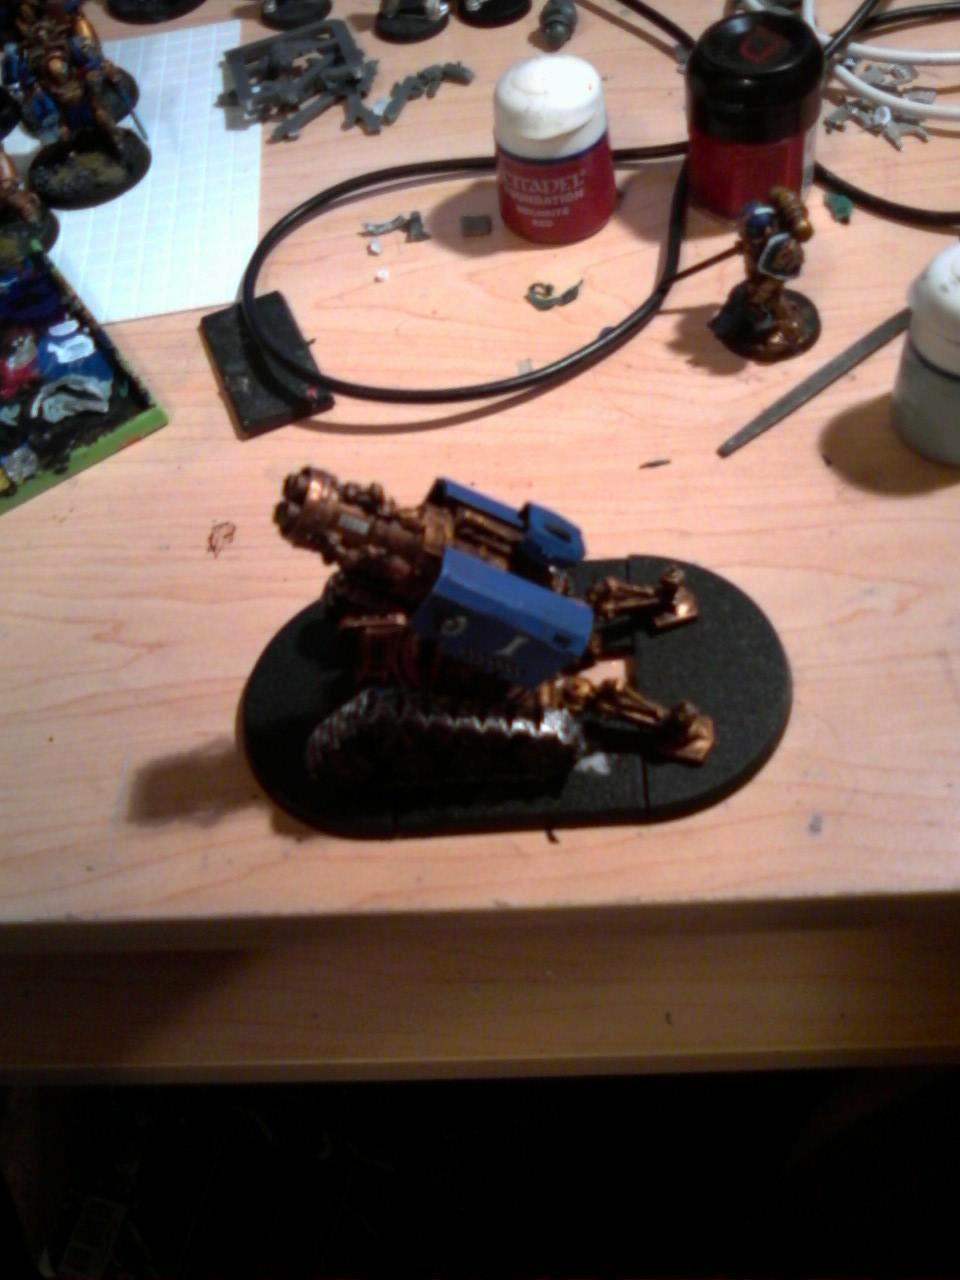 Base, Blurred Photo, Conversion, Do-it-yourself, Thunderfire